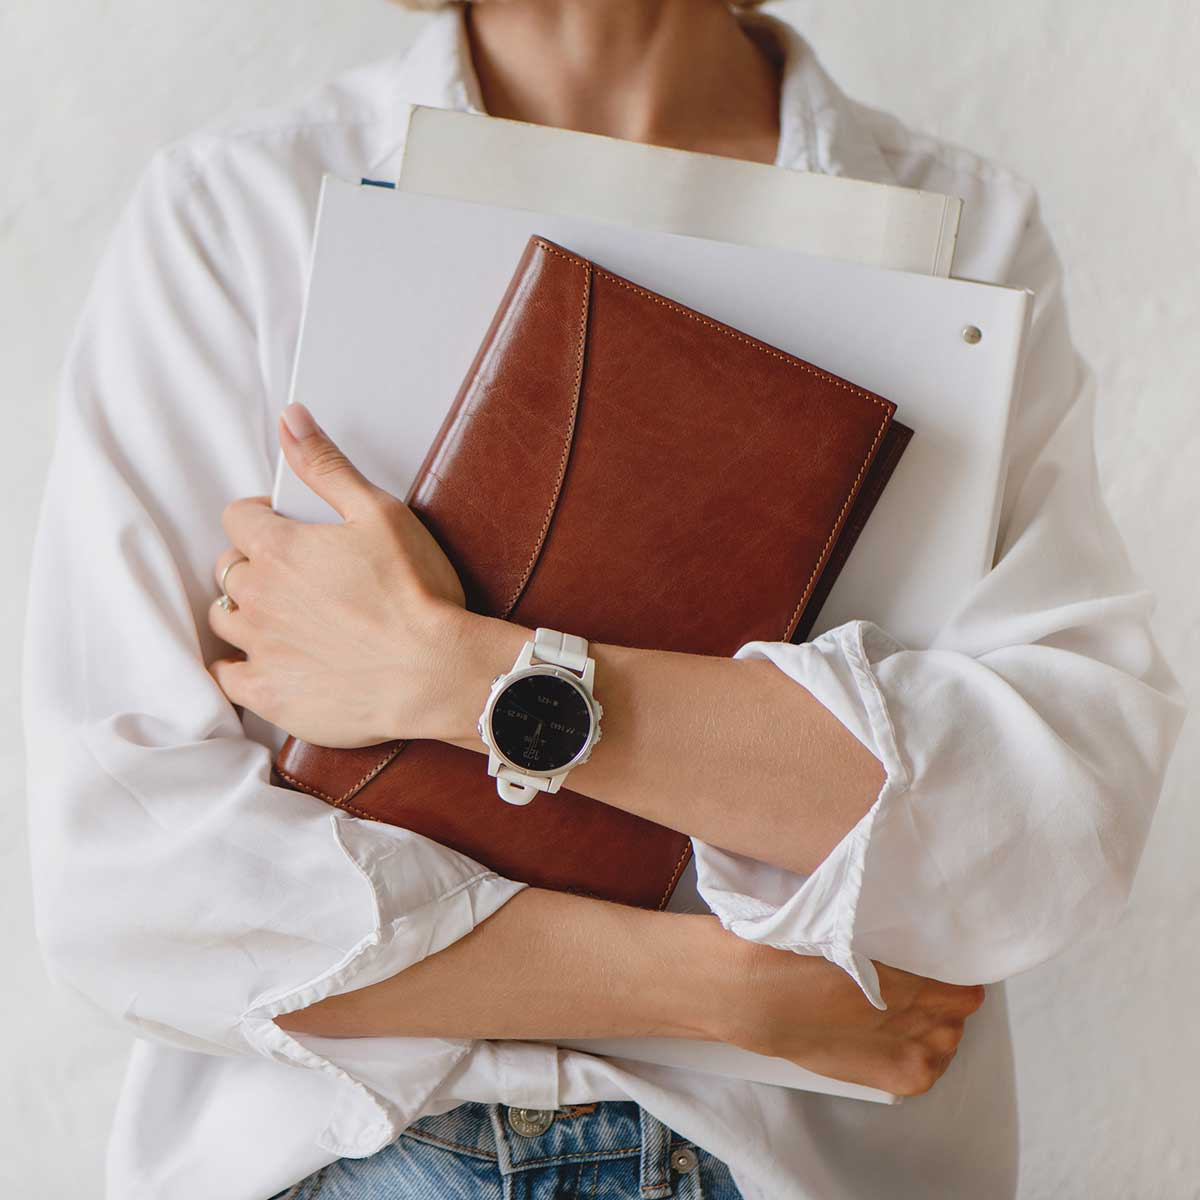 woman wearing white watch and white shirt holding leather journal and white binders